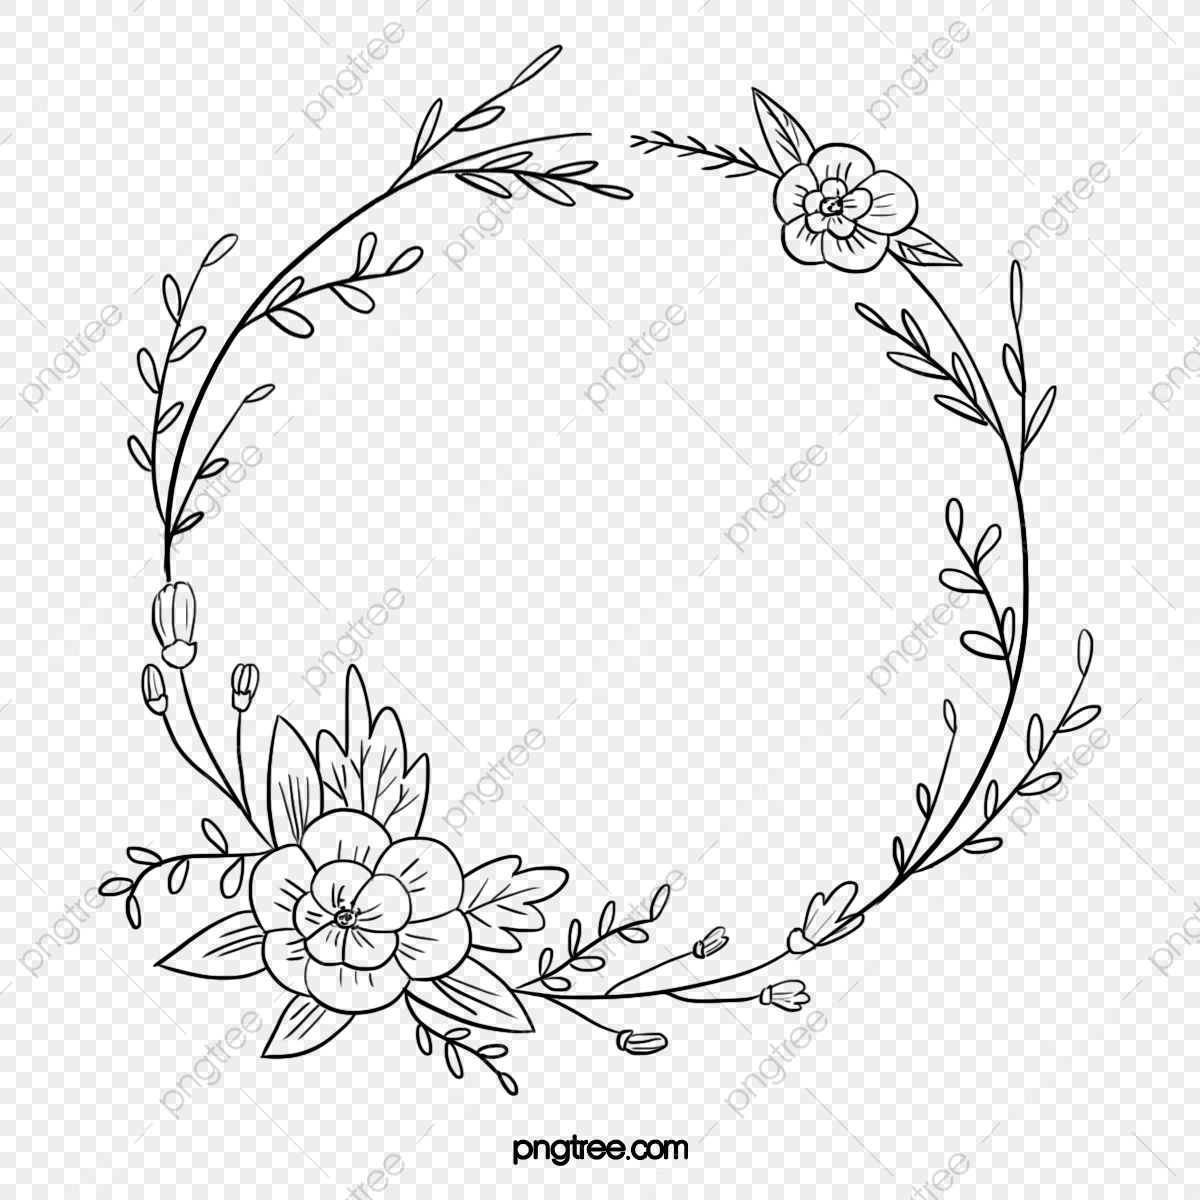 Black Hand Painted Line Side Wedding Decoration With Enclosed Round Symbolic Flower Border Border Clipart Wedding Decorations Wedding Ceremony Png Transpare Flower Embroidery Designs Hand Embroidery Patterns Free Wreath Drawing